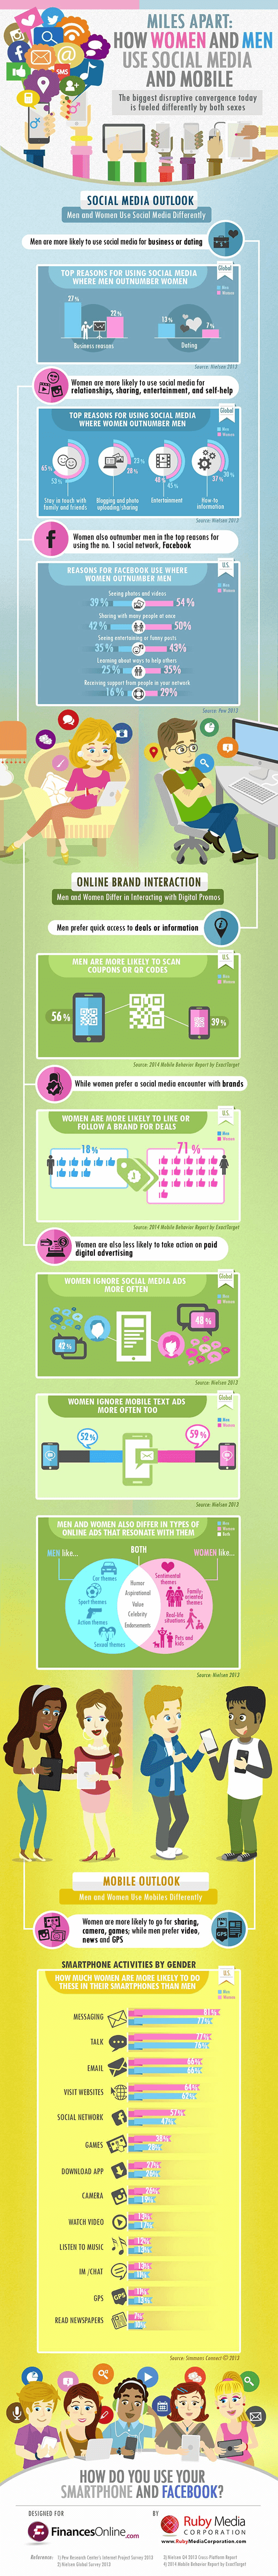 1396456806-smartphone-social-media-usage-men-vs-women-infographic